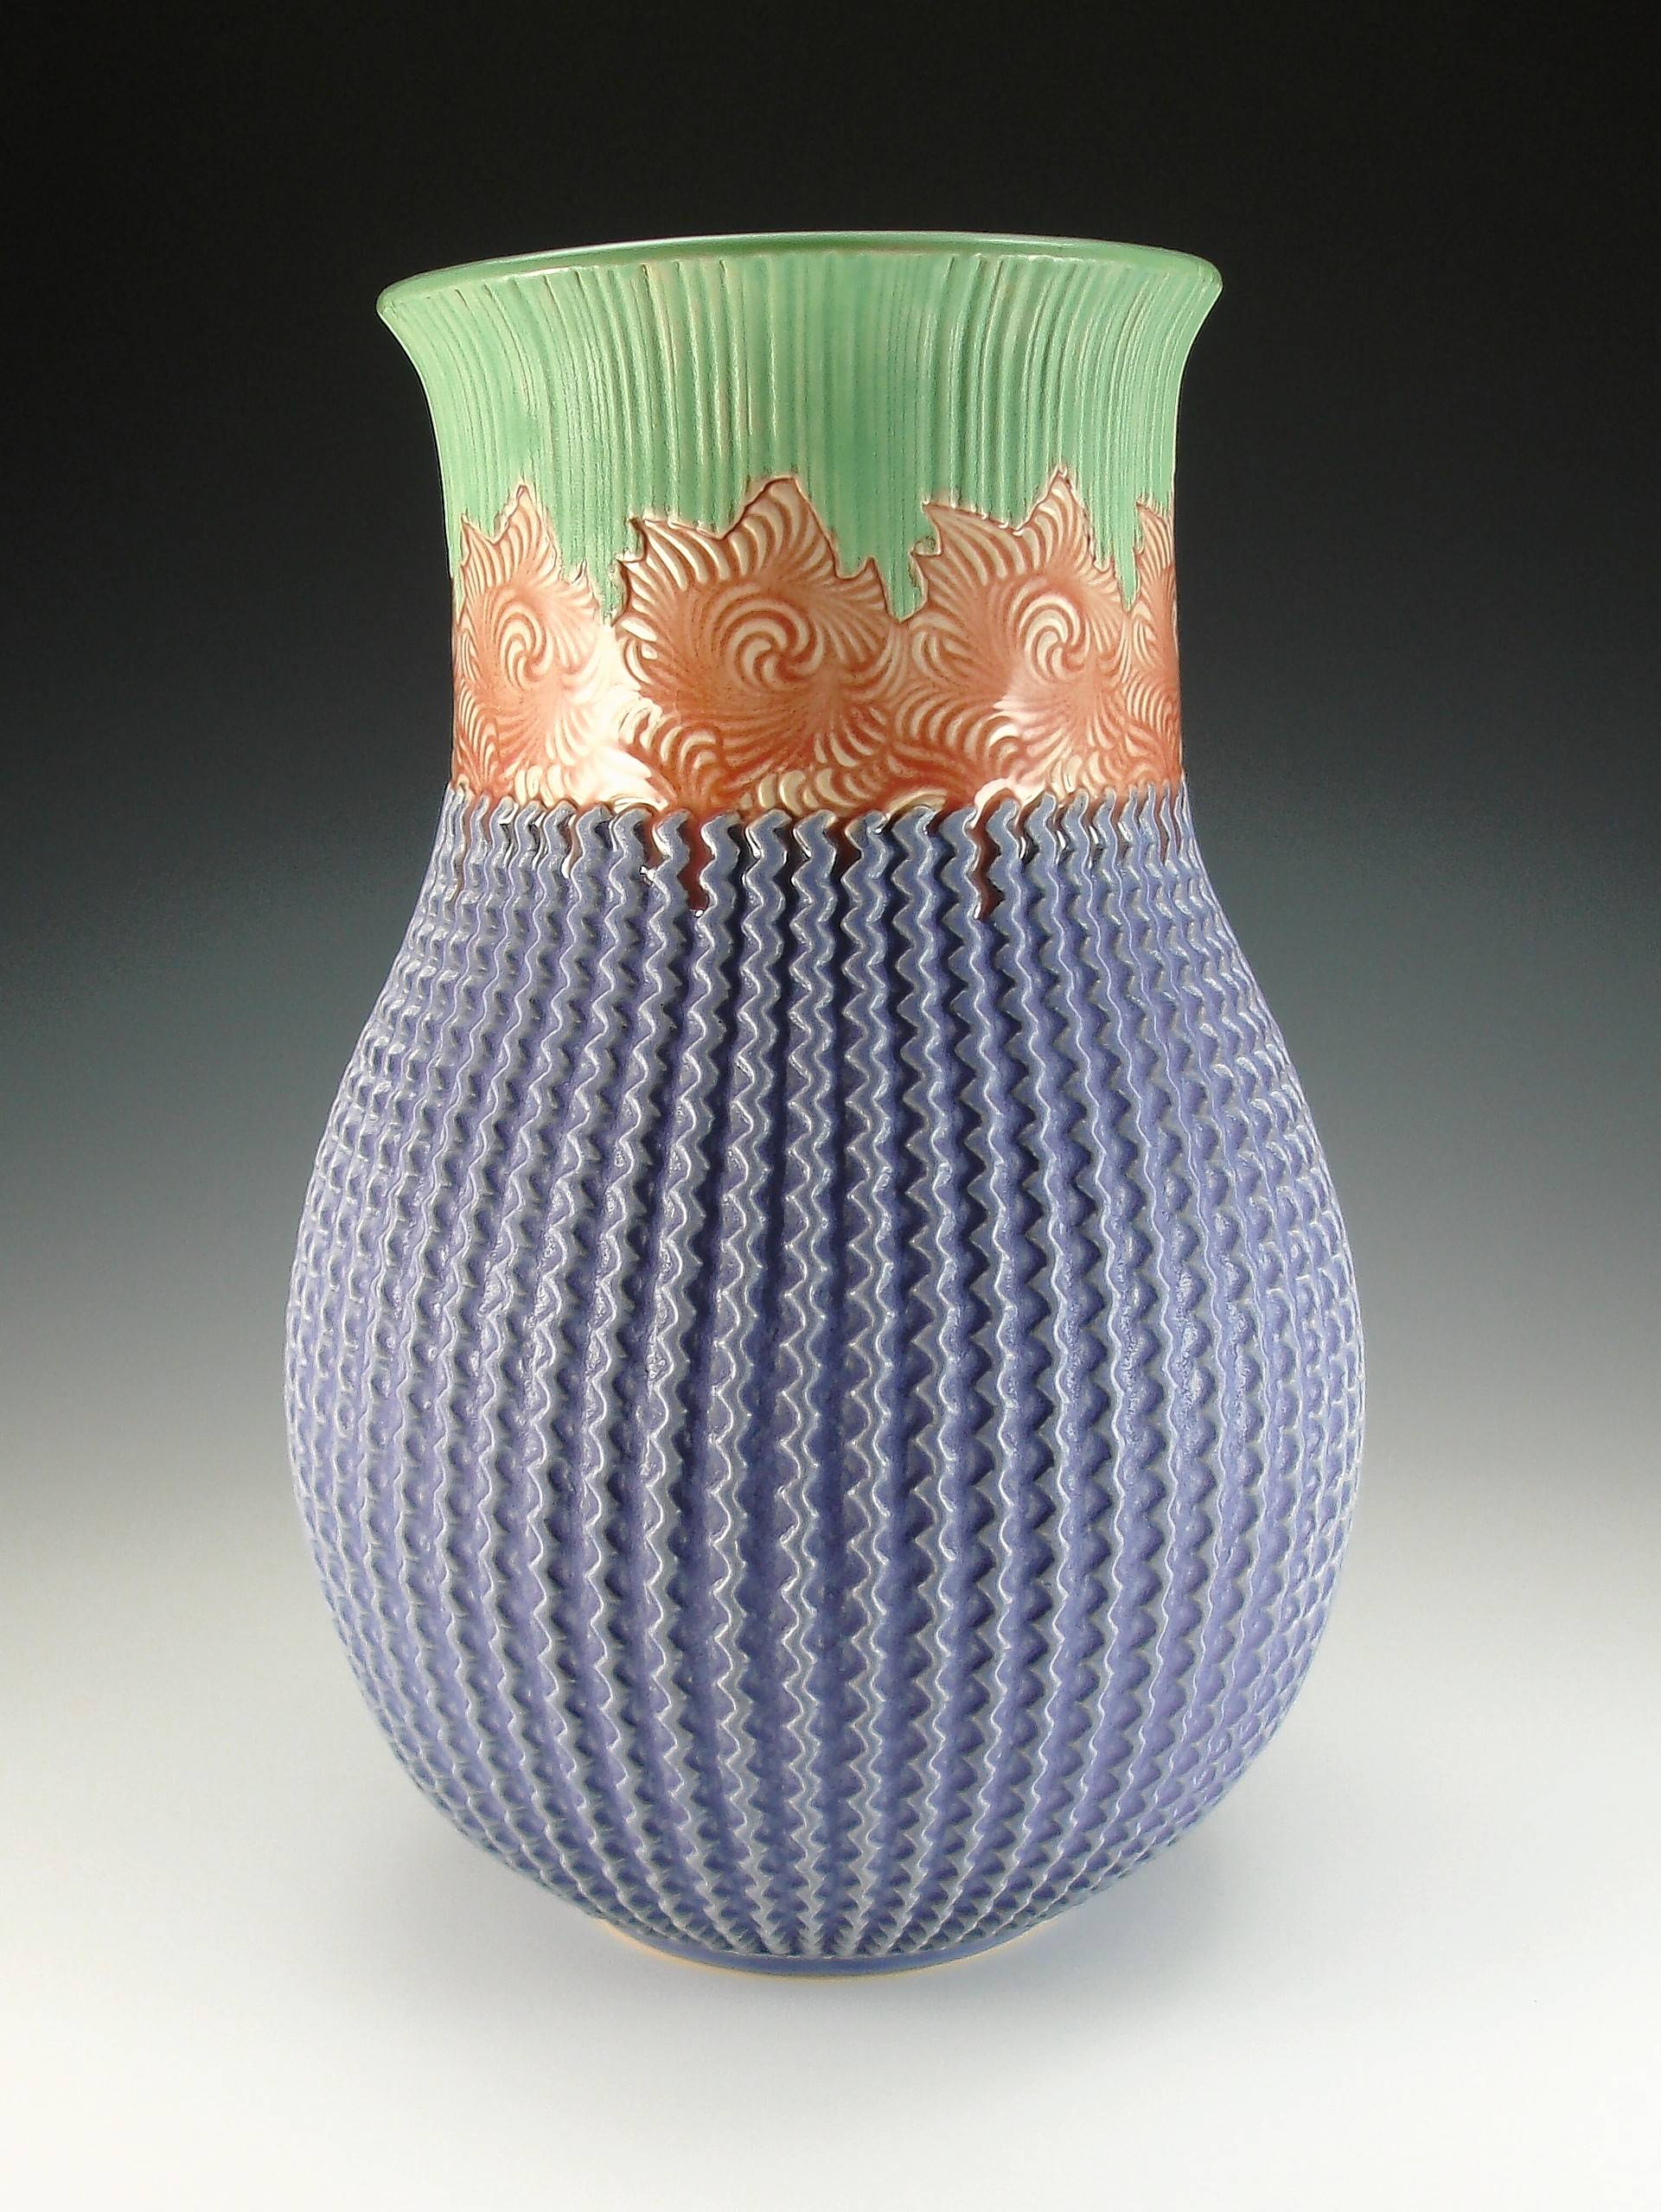 A vase with imprints from Annie Chrietzburg's own templates is an example of her work she will demo at a hands-on pottery workshop Sept. 29-30.